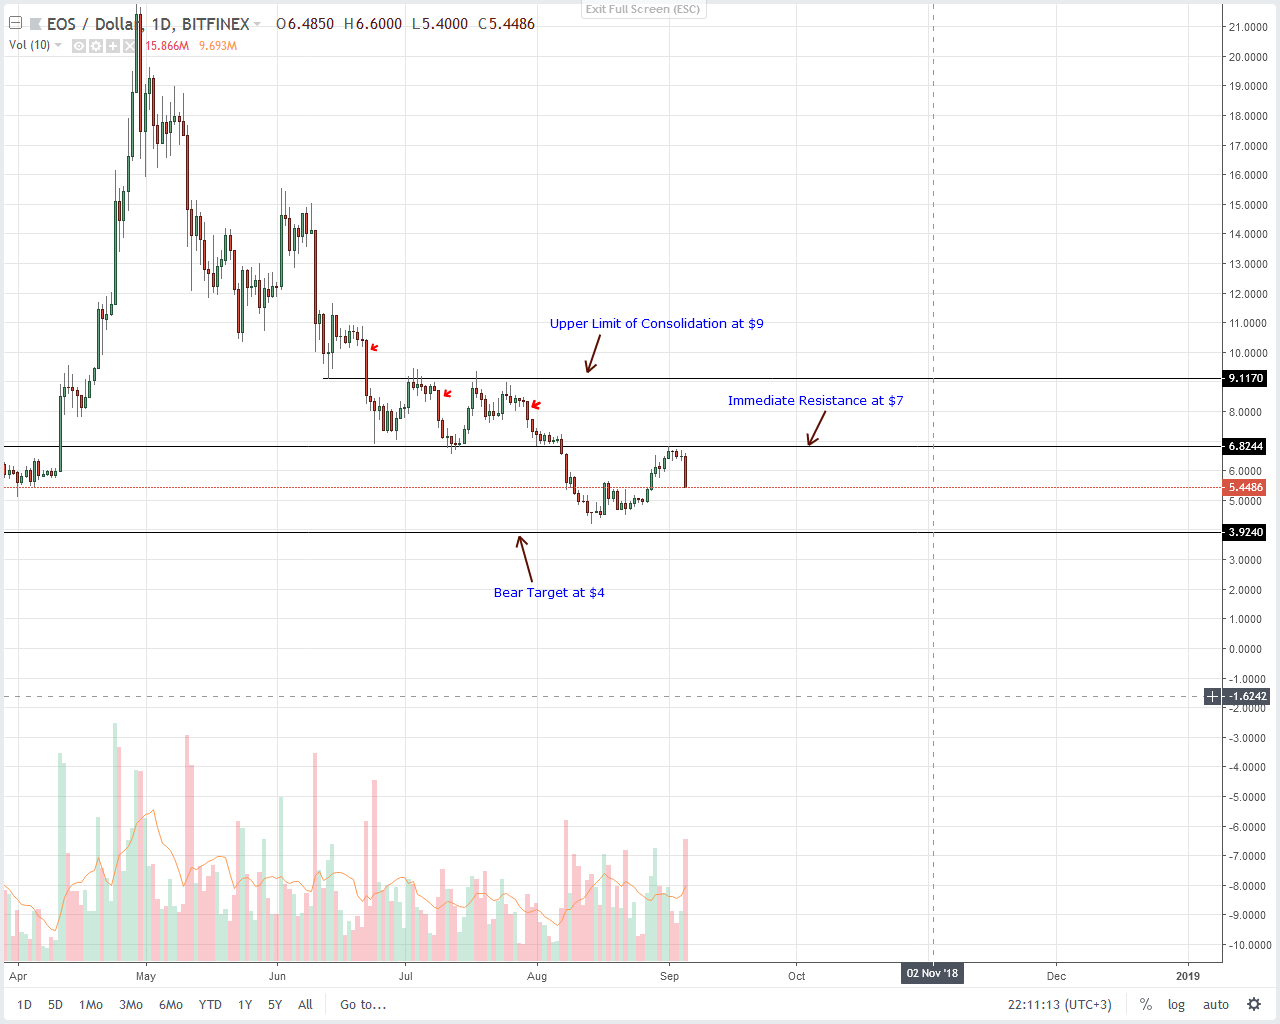 EOS Daily Chart Sept 6